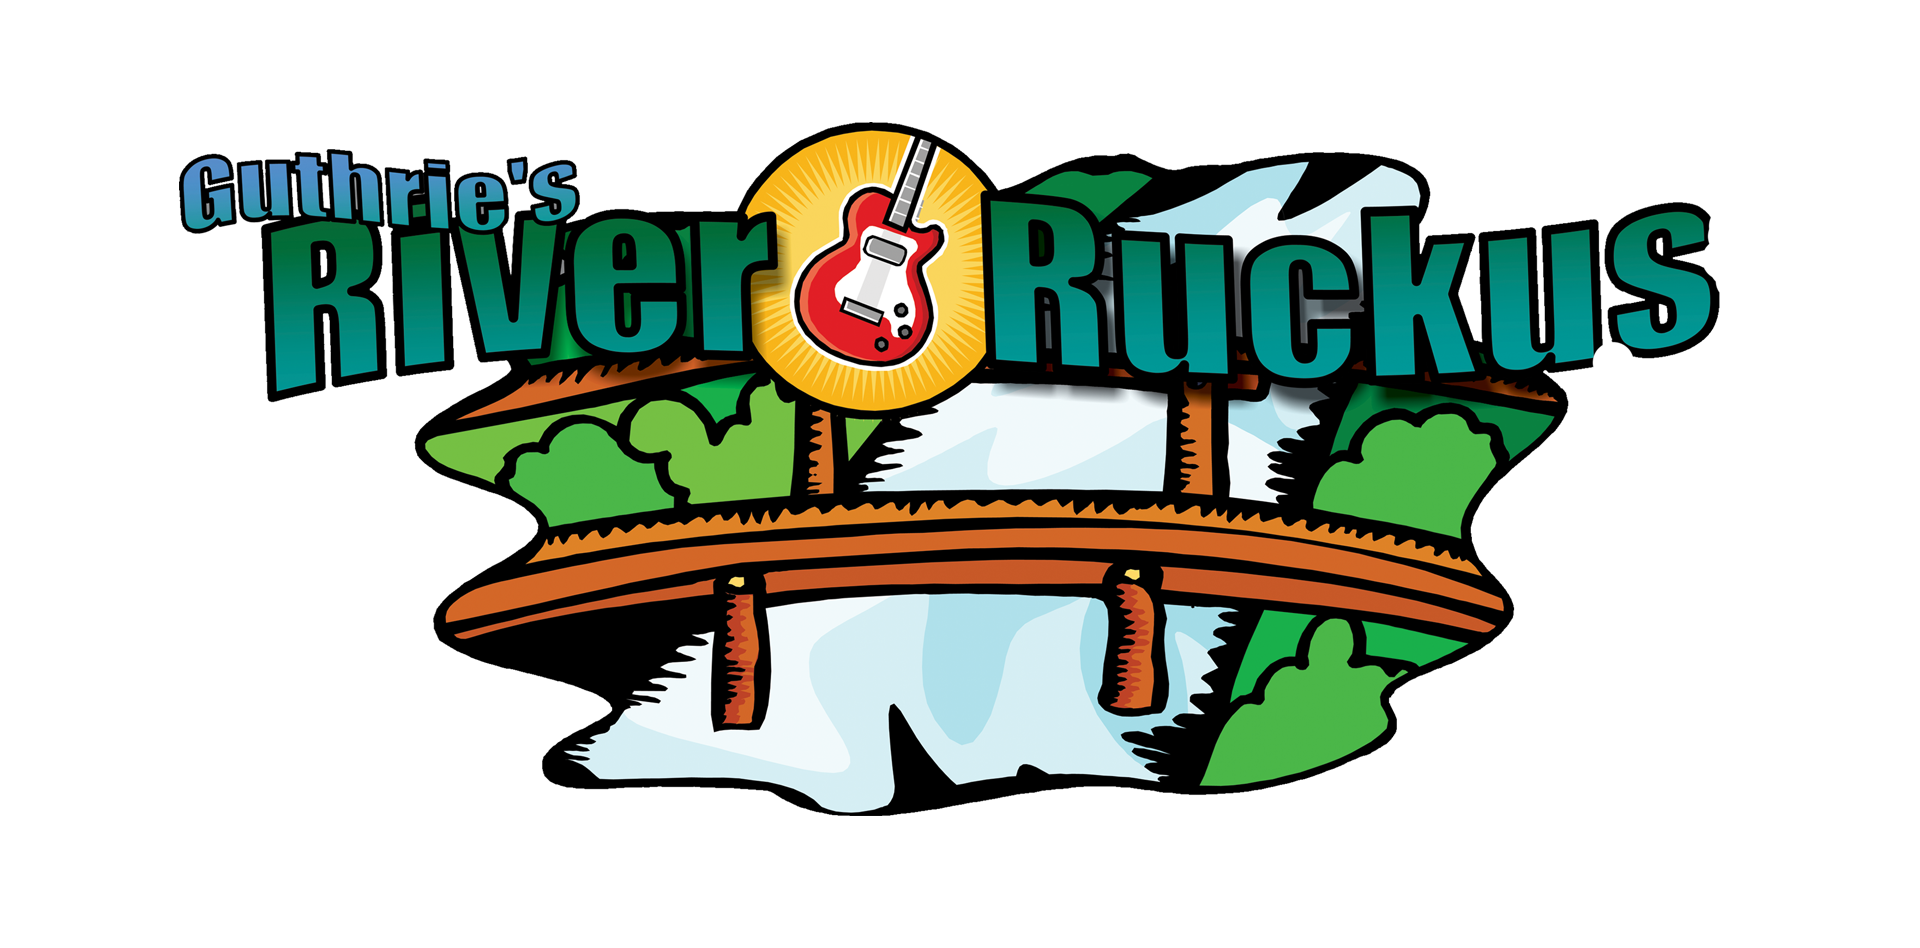 Guthrie couty fair in guthrie center ia clipart picture royalty free stock Tickets for 2016 Guthrie\'s River Ruckus in Guthrie Center from ShowClix picture royalty free stock